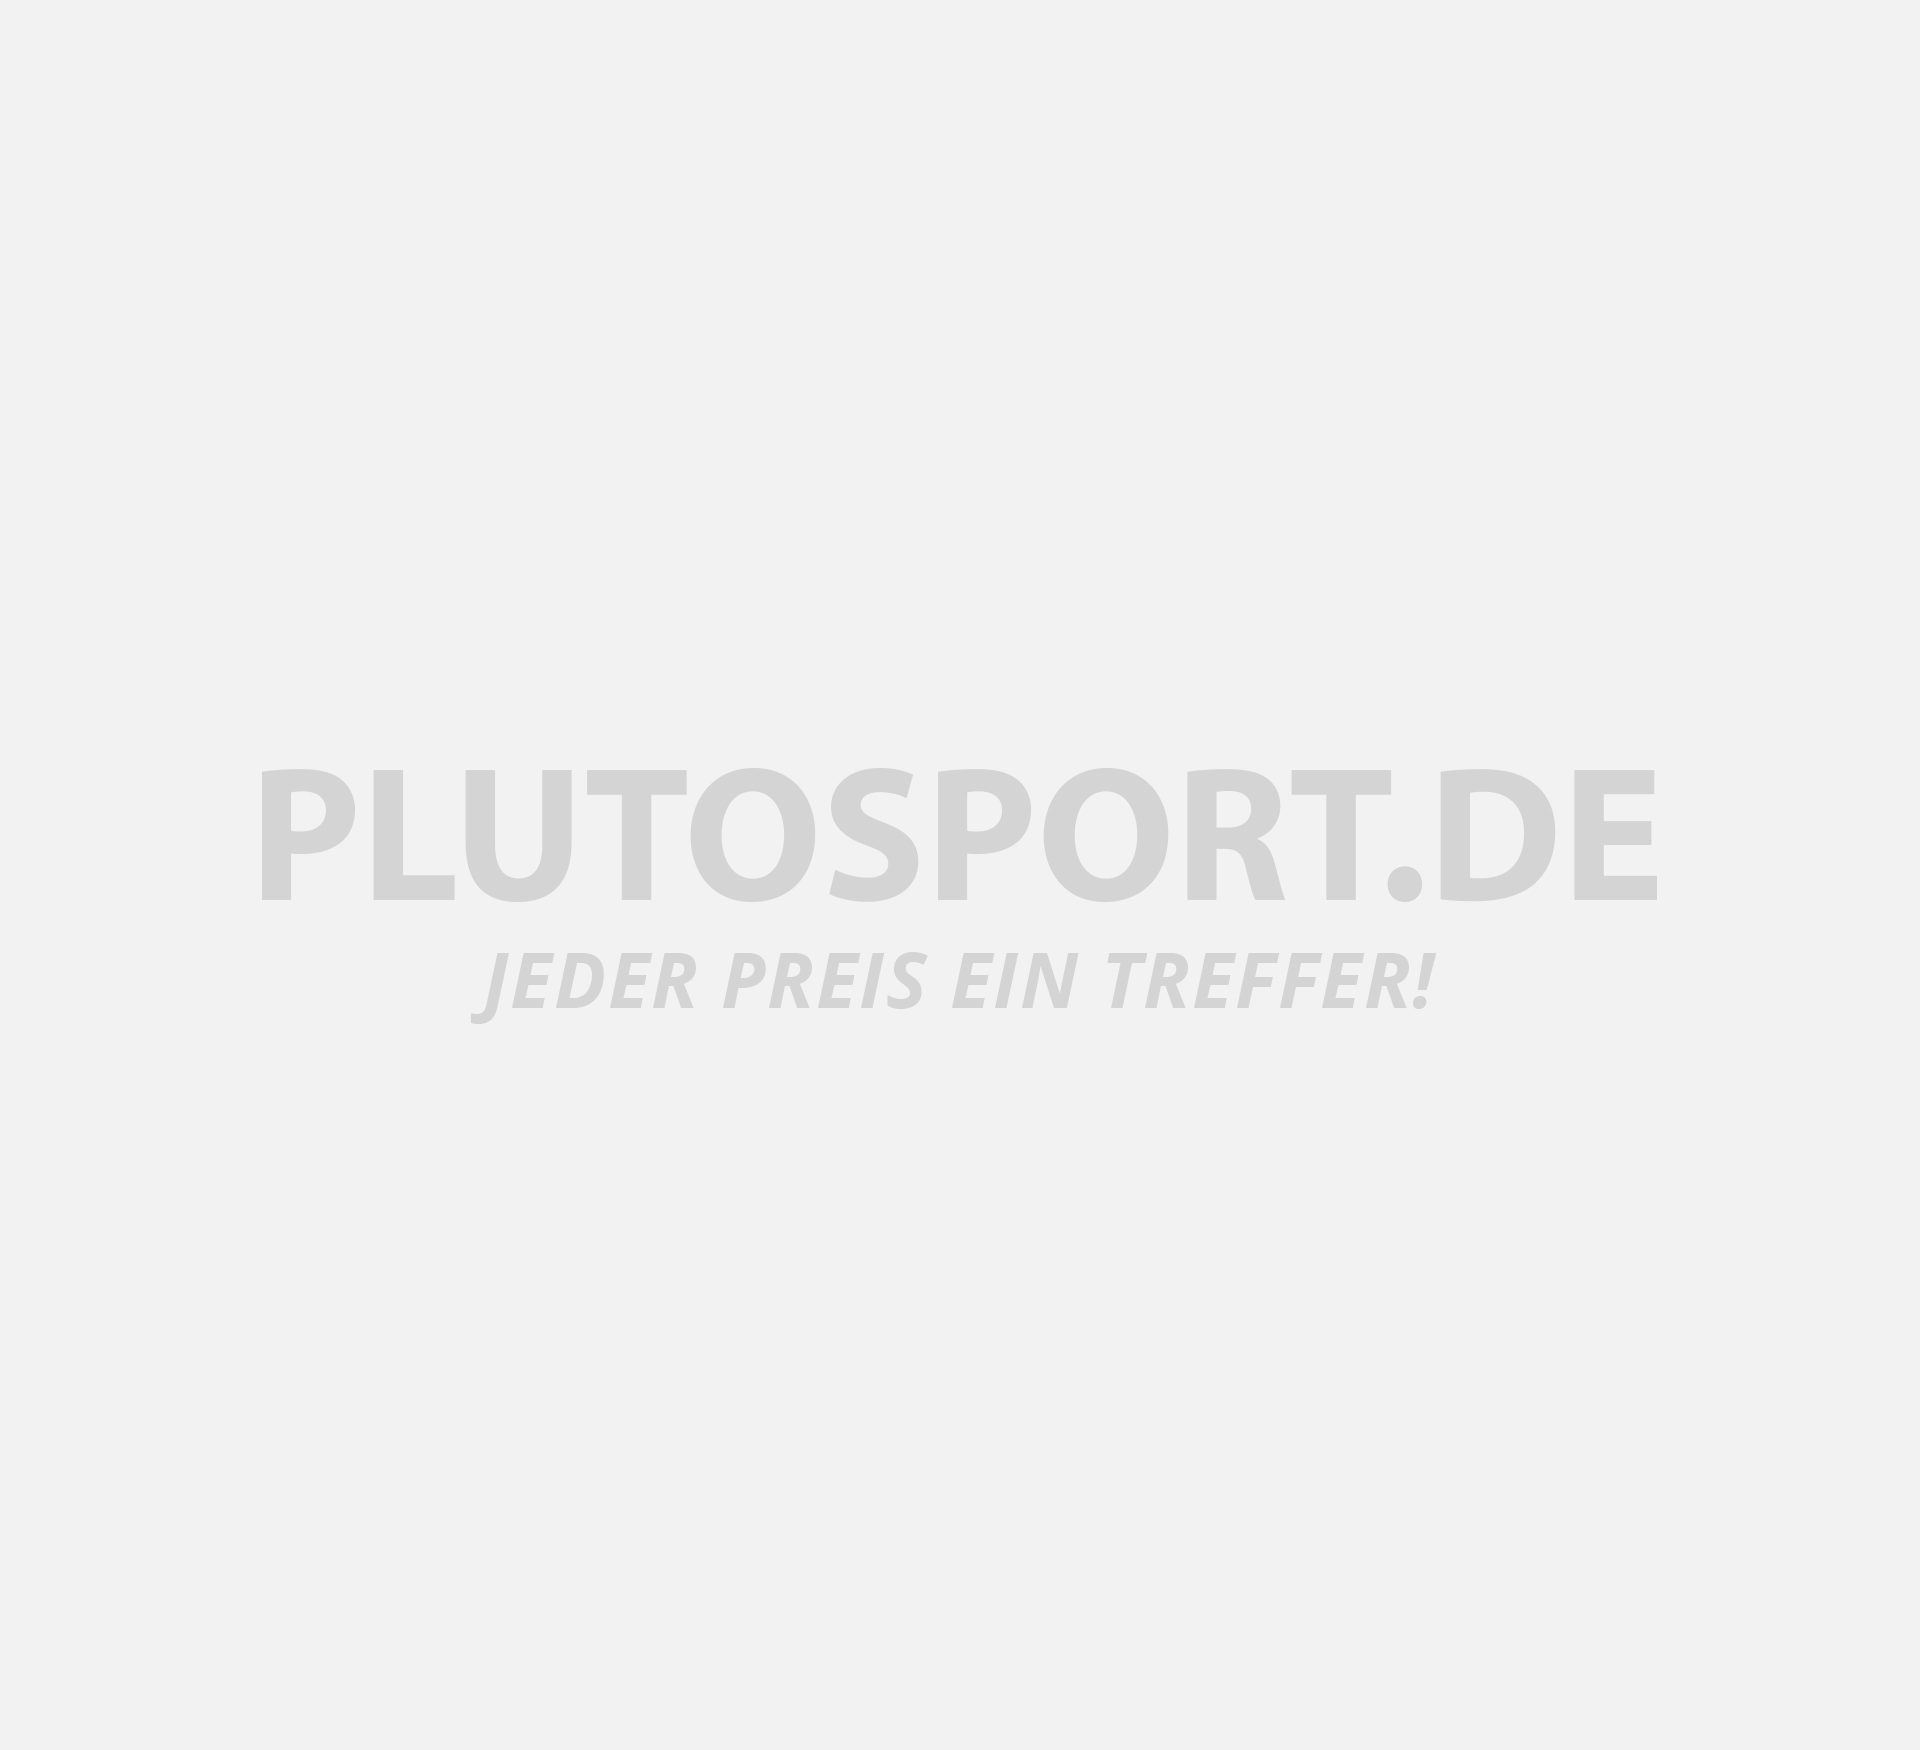 calvin klein t shirt herren 2er pack t shirts. Black Bedroom Furniture Sets. Home Design Ideas